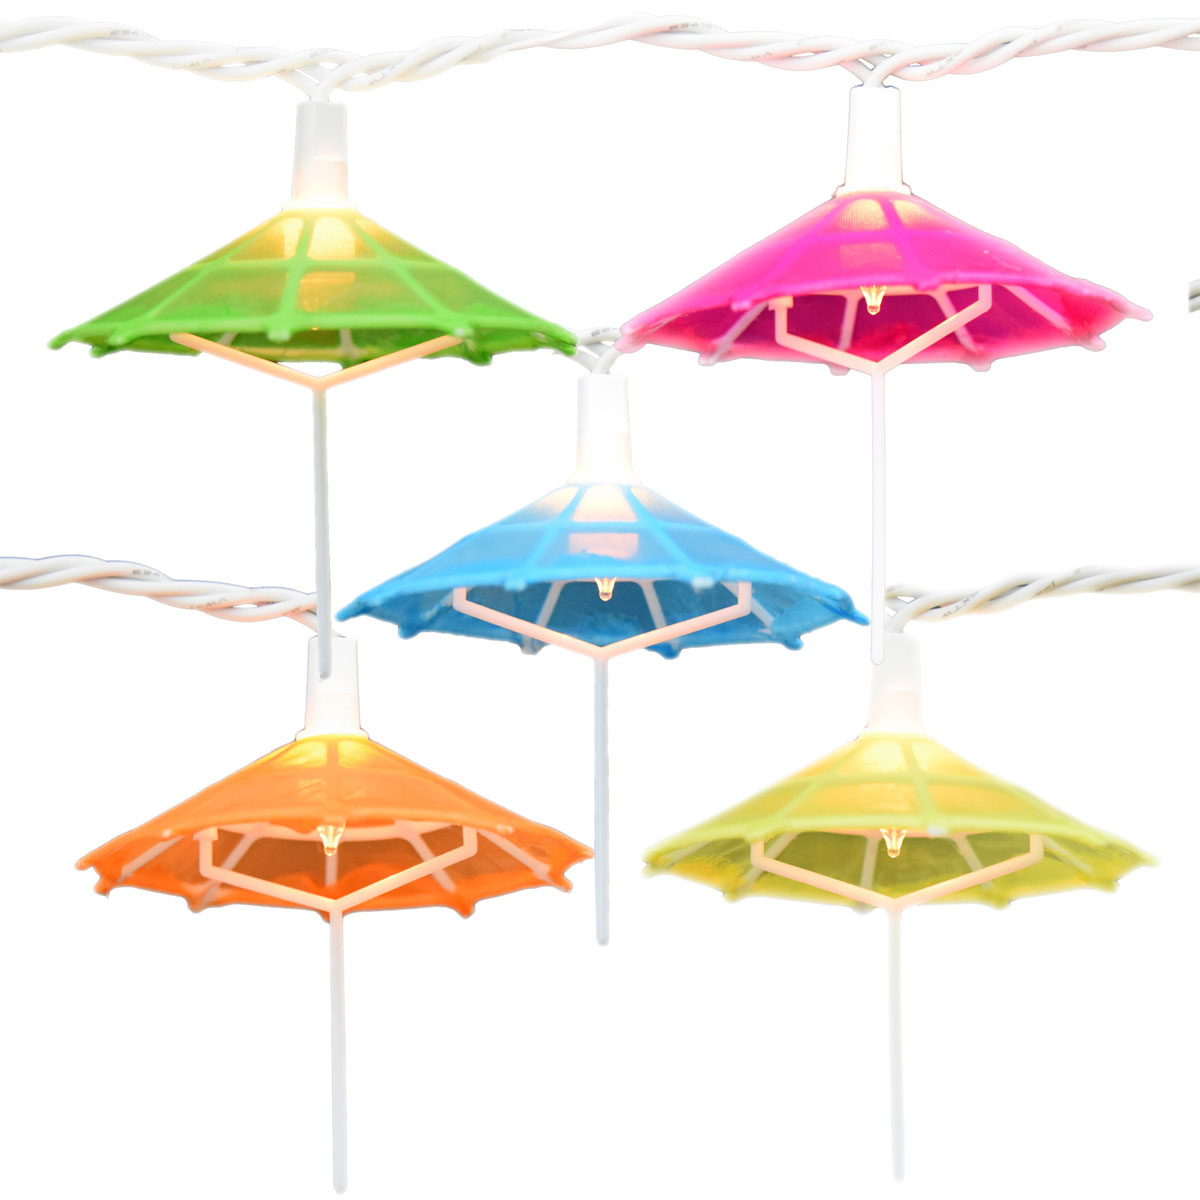 Mini Umbrella Party String Lights 10 Lights